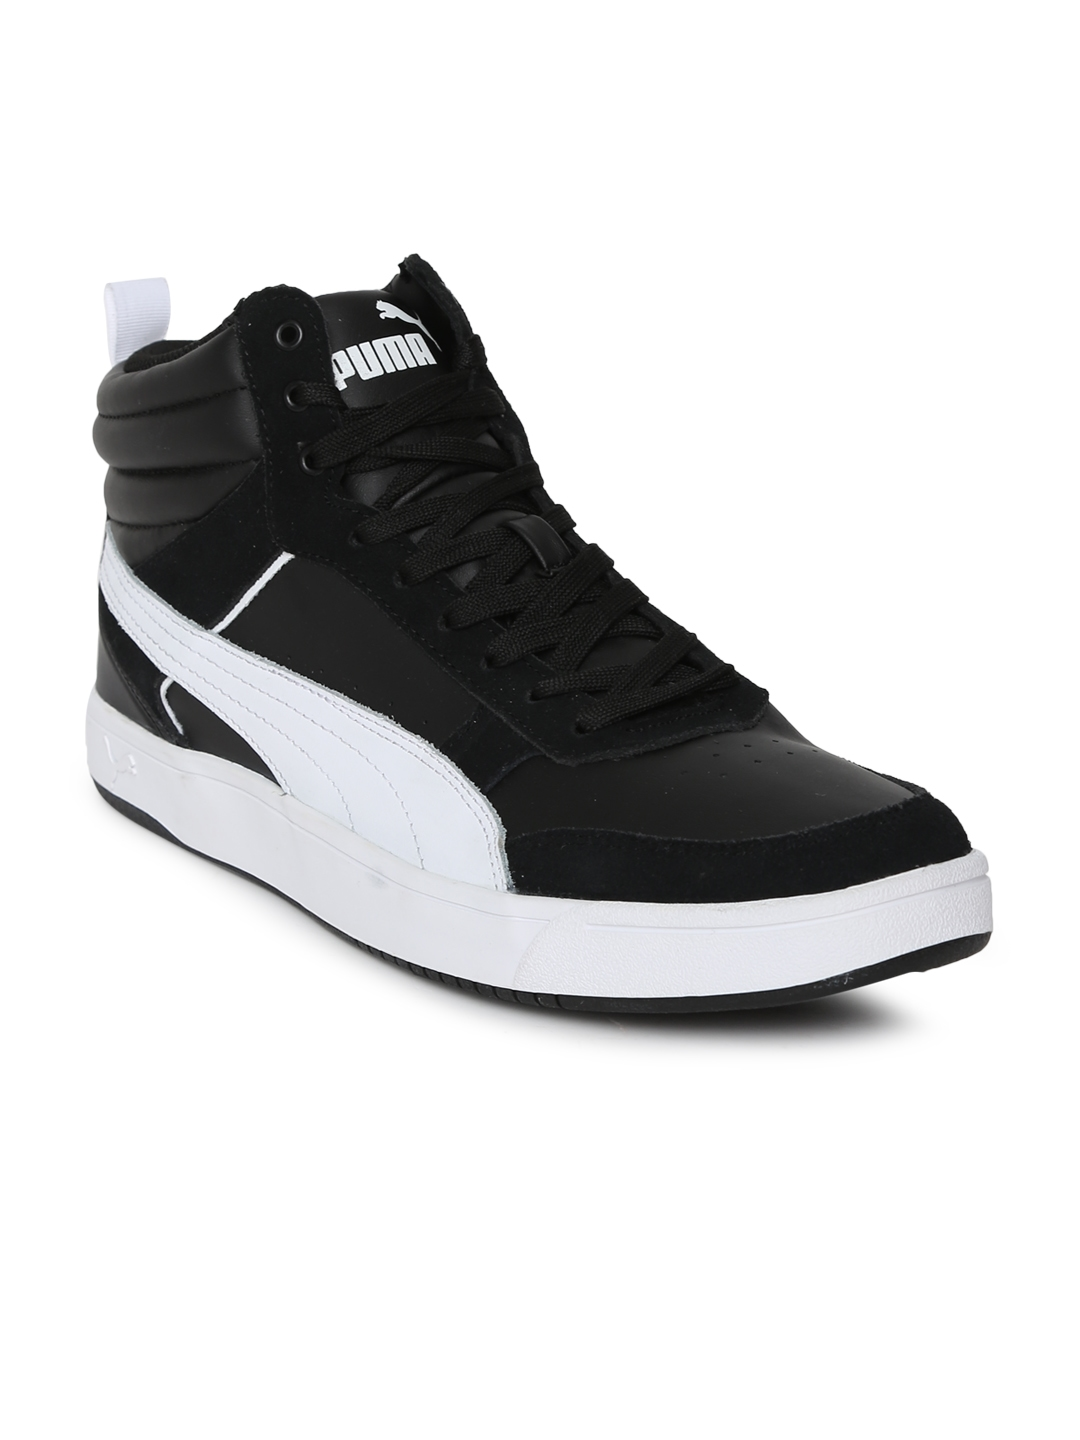 686a3e2806c Puma Men Black Solid Suede Mid-Top Rebound Street v2 IDP Sneakers